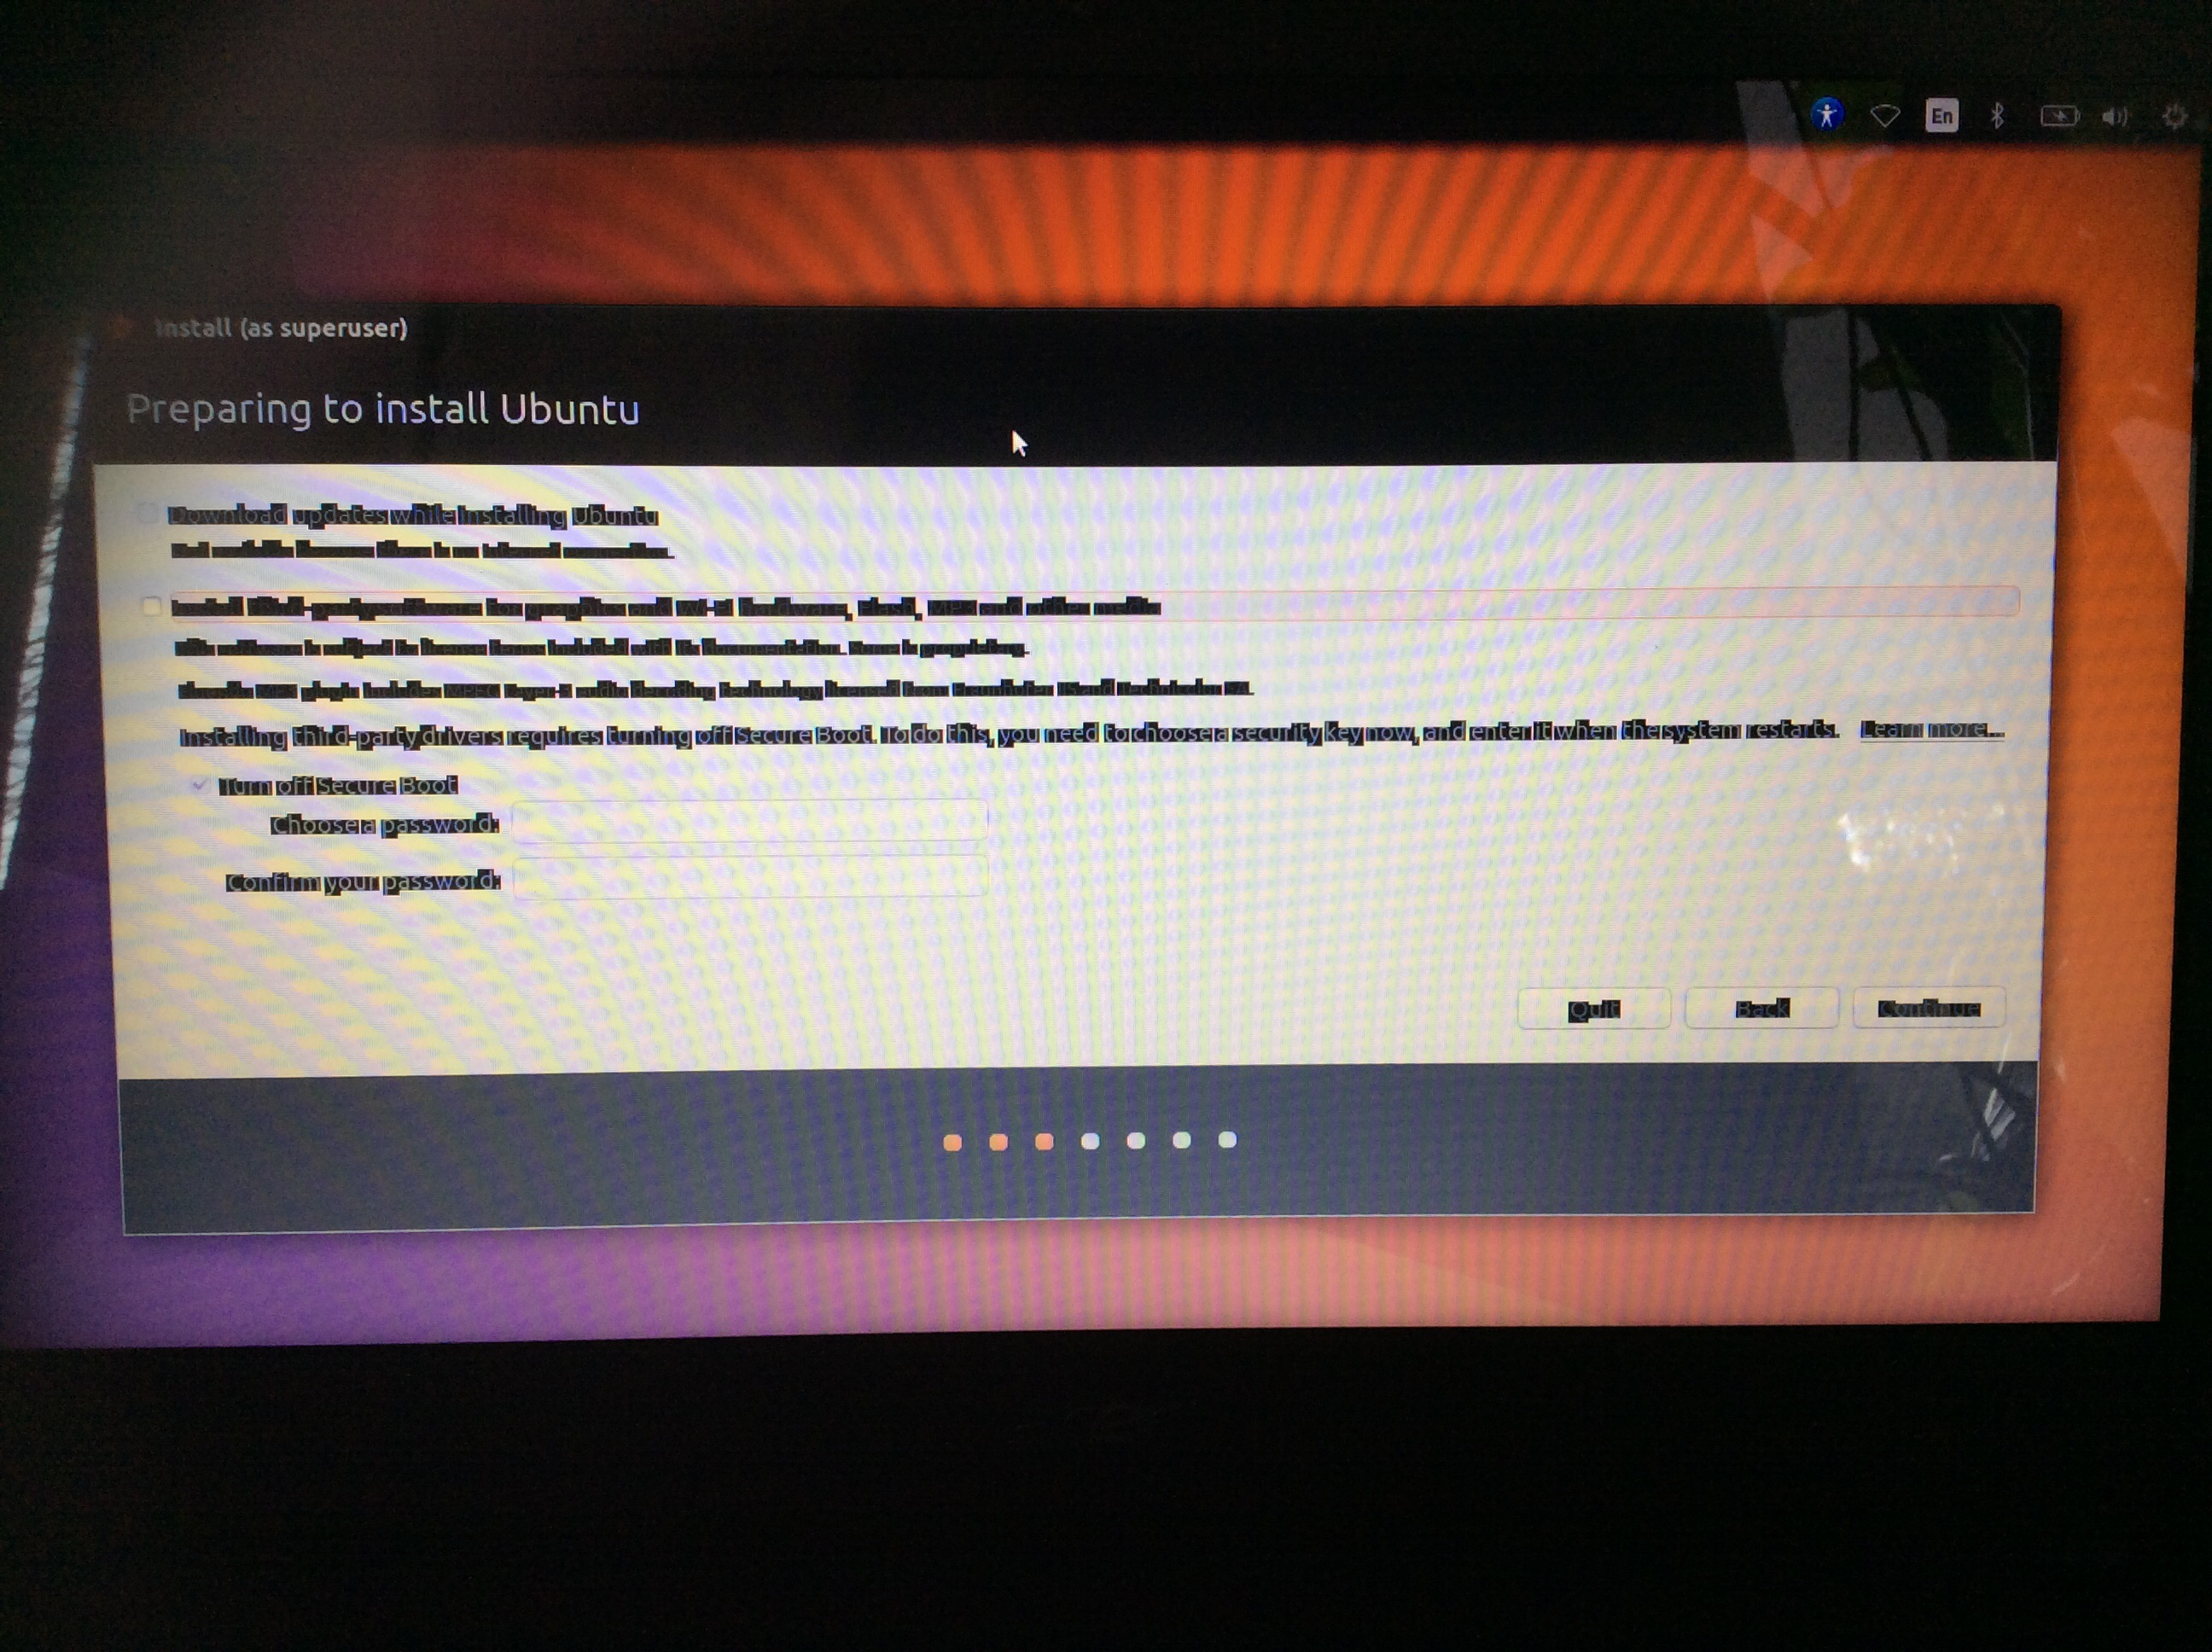 Messed up text when trying to install Ubuntu  (HELP